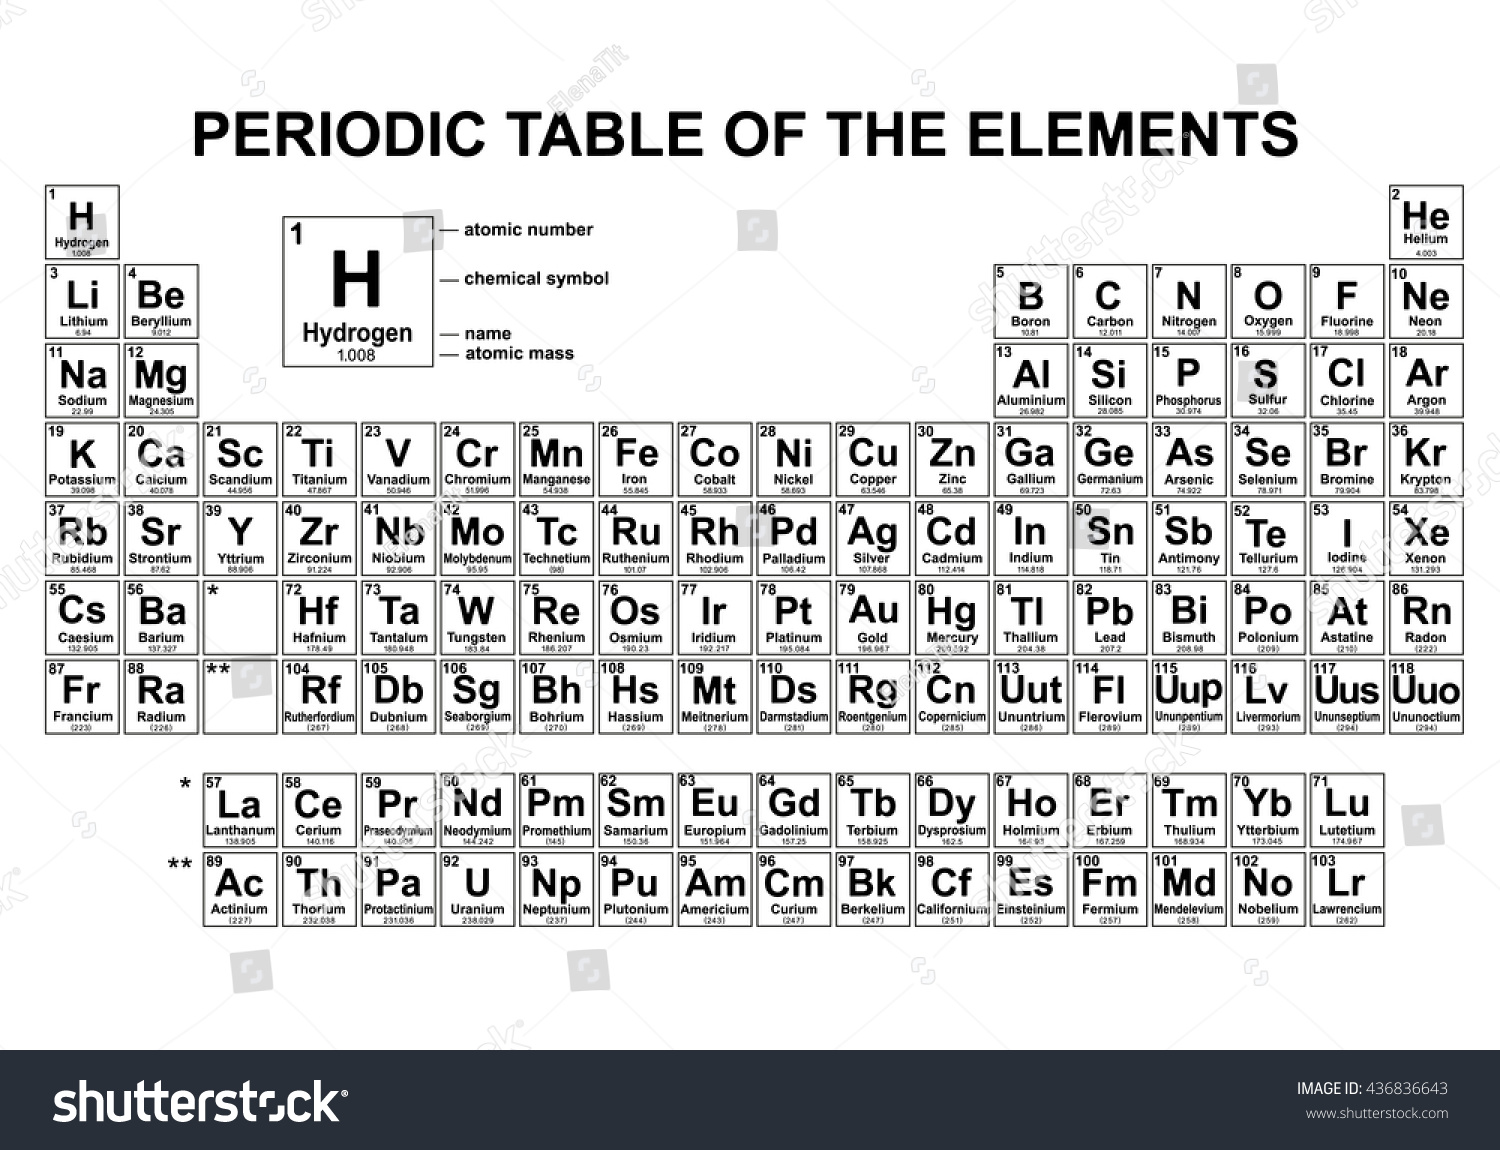 List of periodic table elements sorted by atomic number pdf gallery periodic table names alphabetical order images periodic table list of periodic table elements sorted by atomic urtaz Gallery